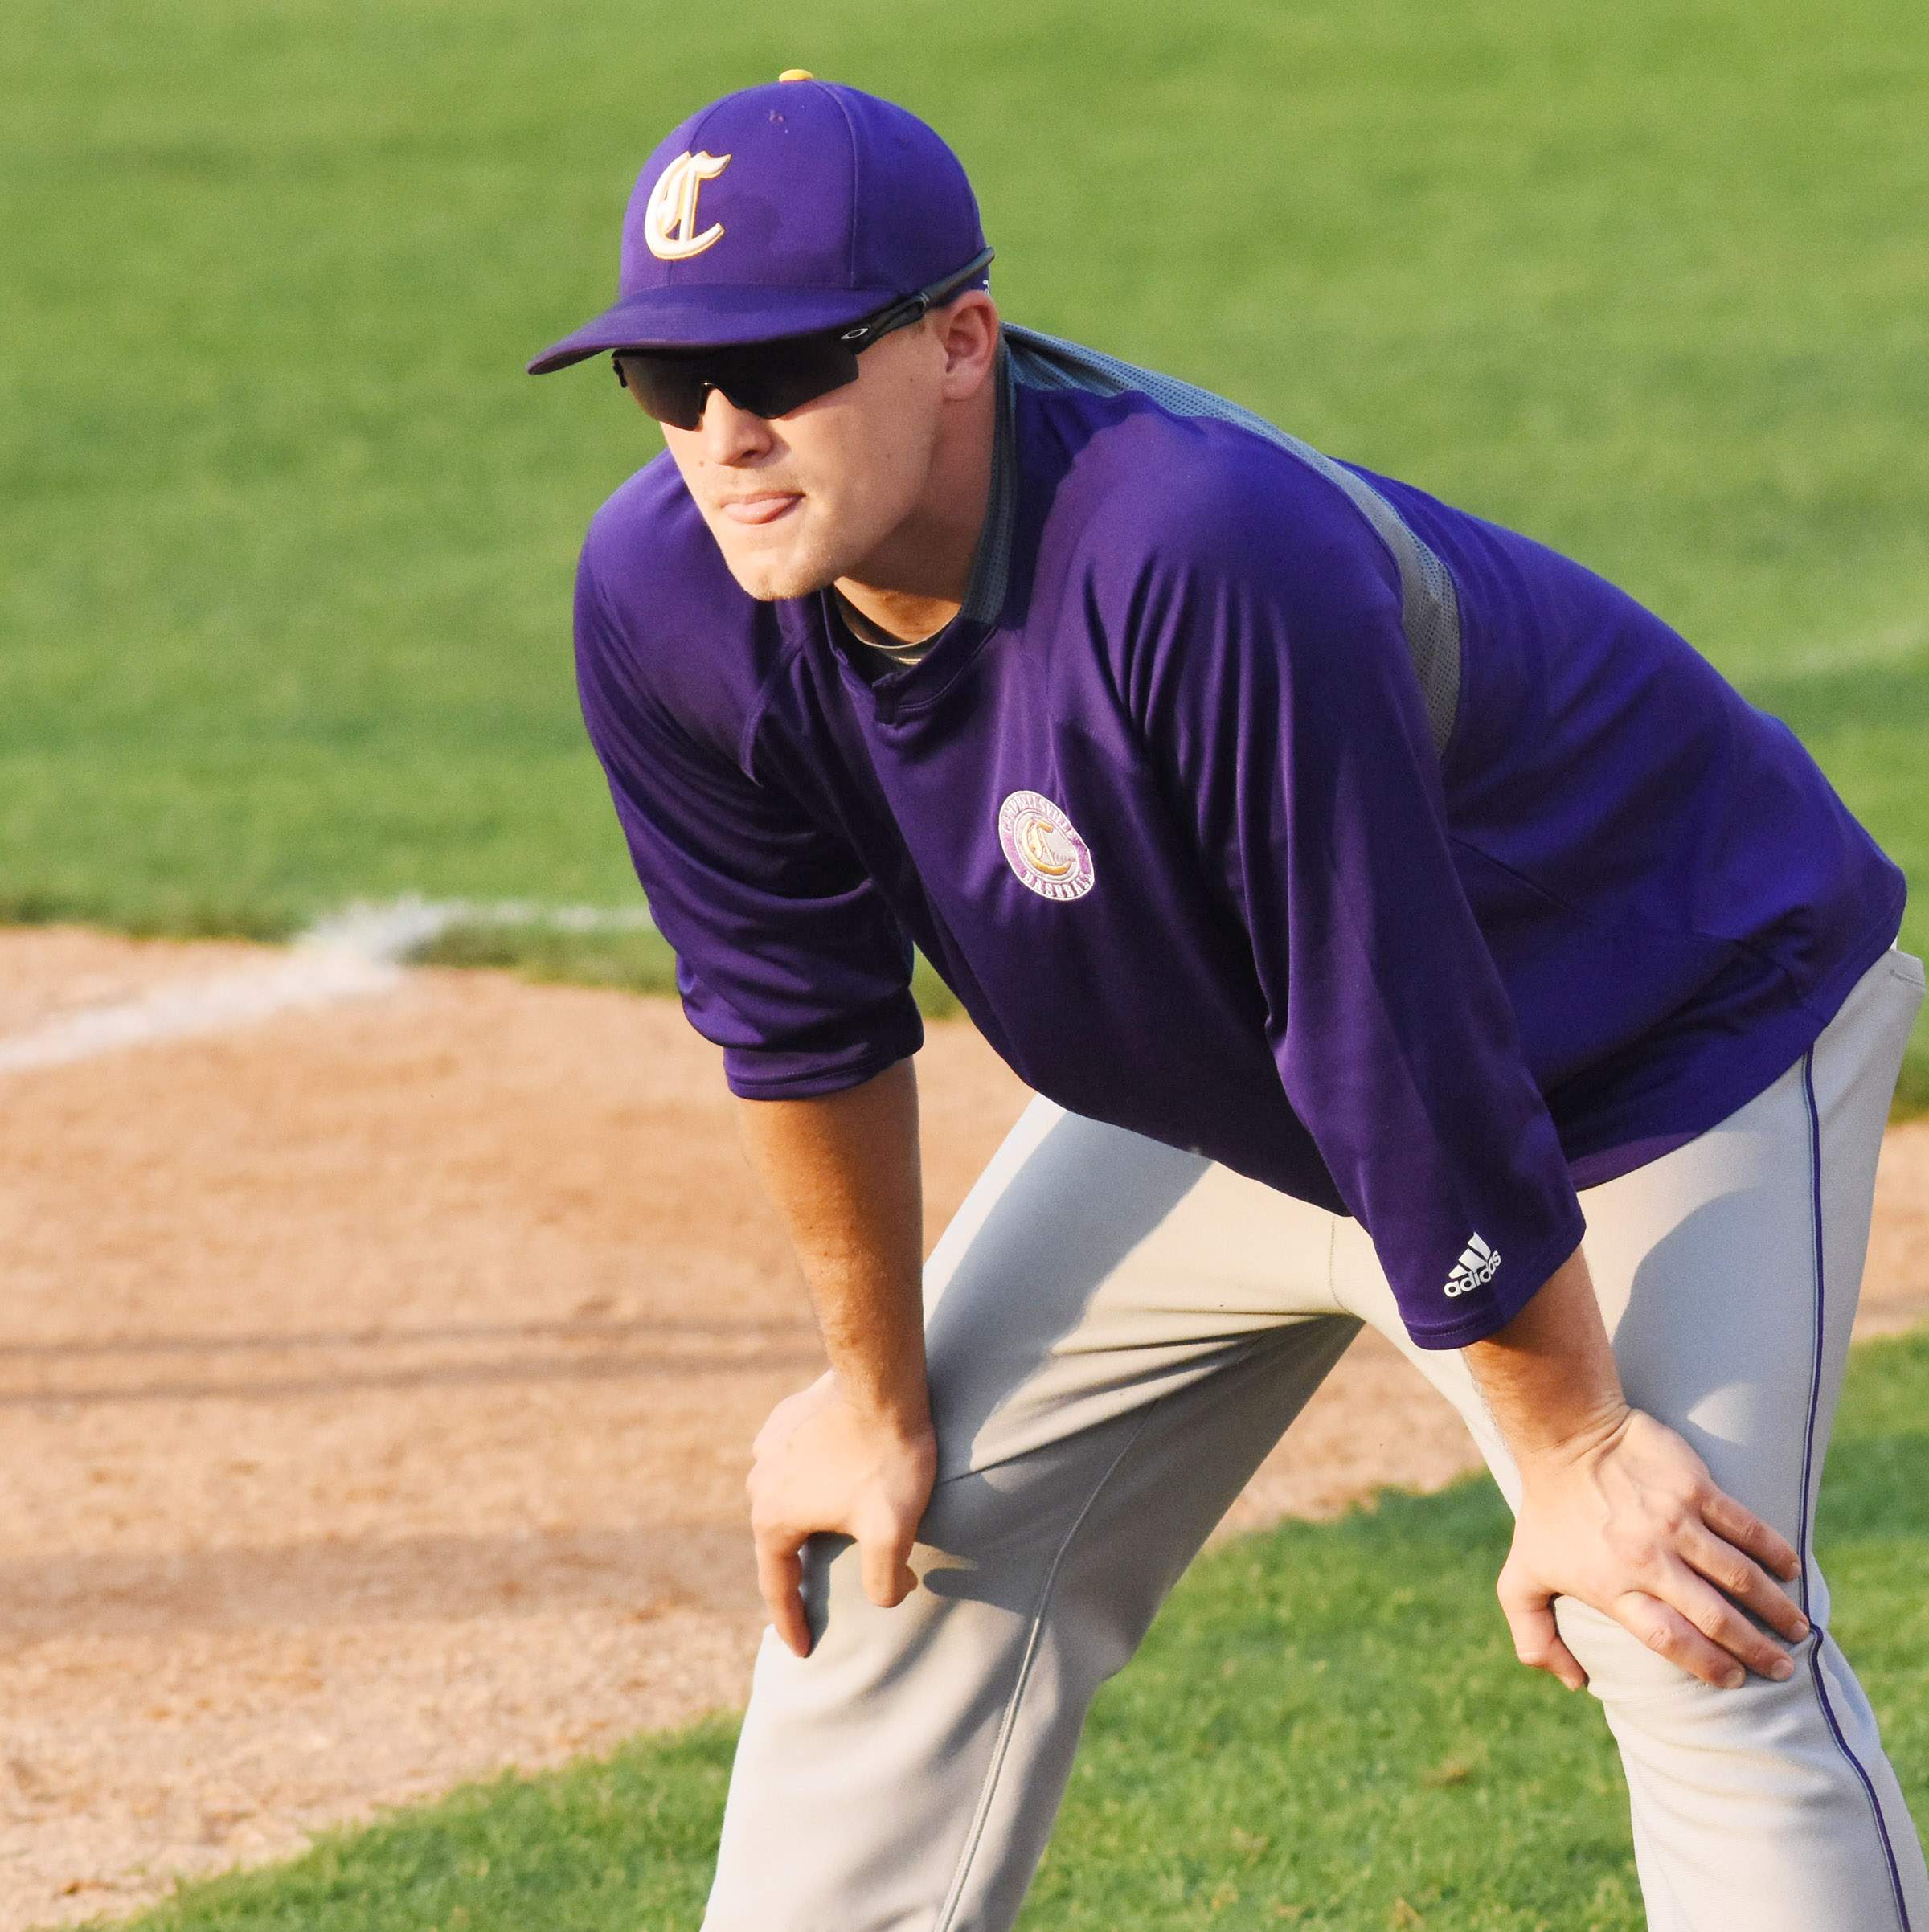 CMS baseball assistant coach Bradley Bates watches his players.